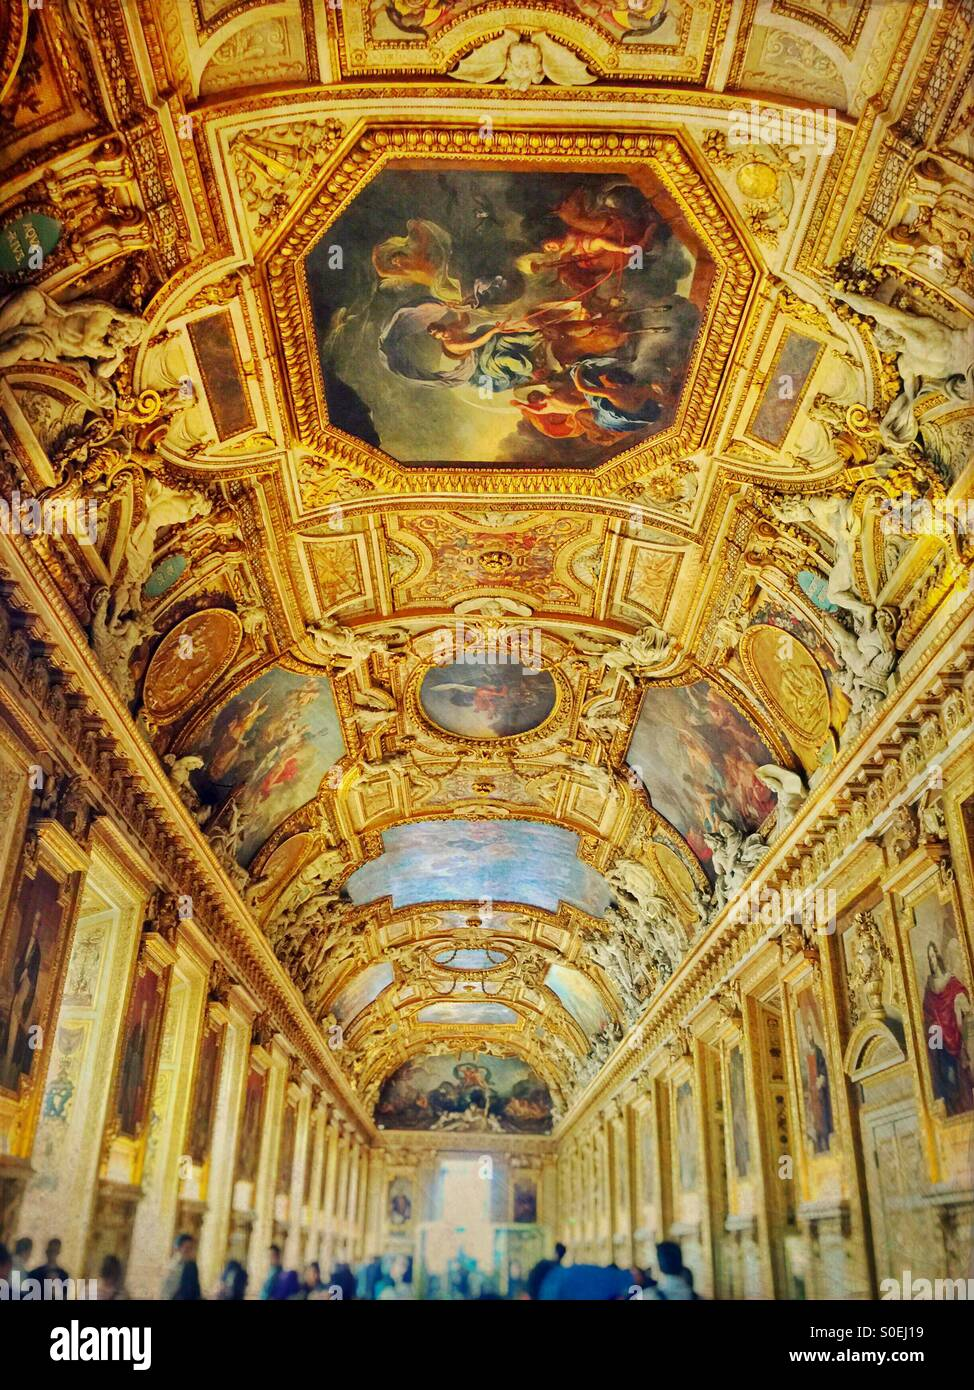 The golden Galerie d'Apollon famous for its high vaulted ceilings with painted decorations and stucco sculptures.Stock Photo